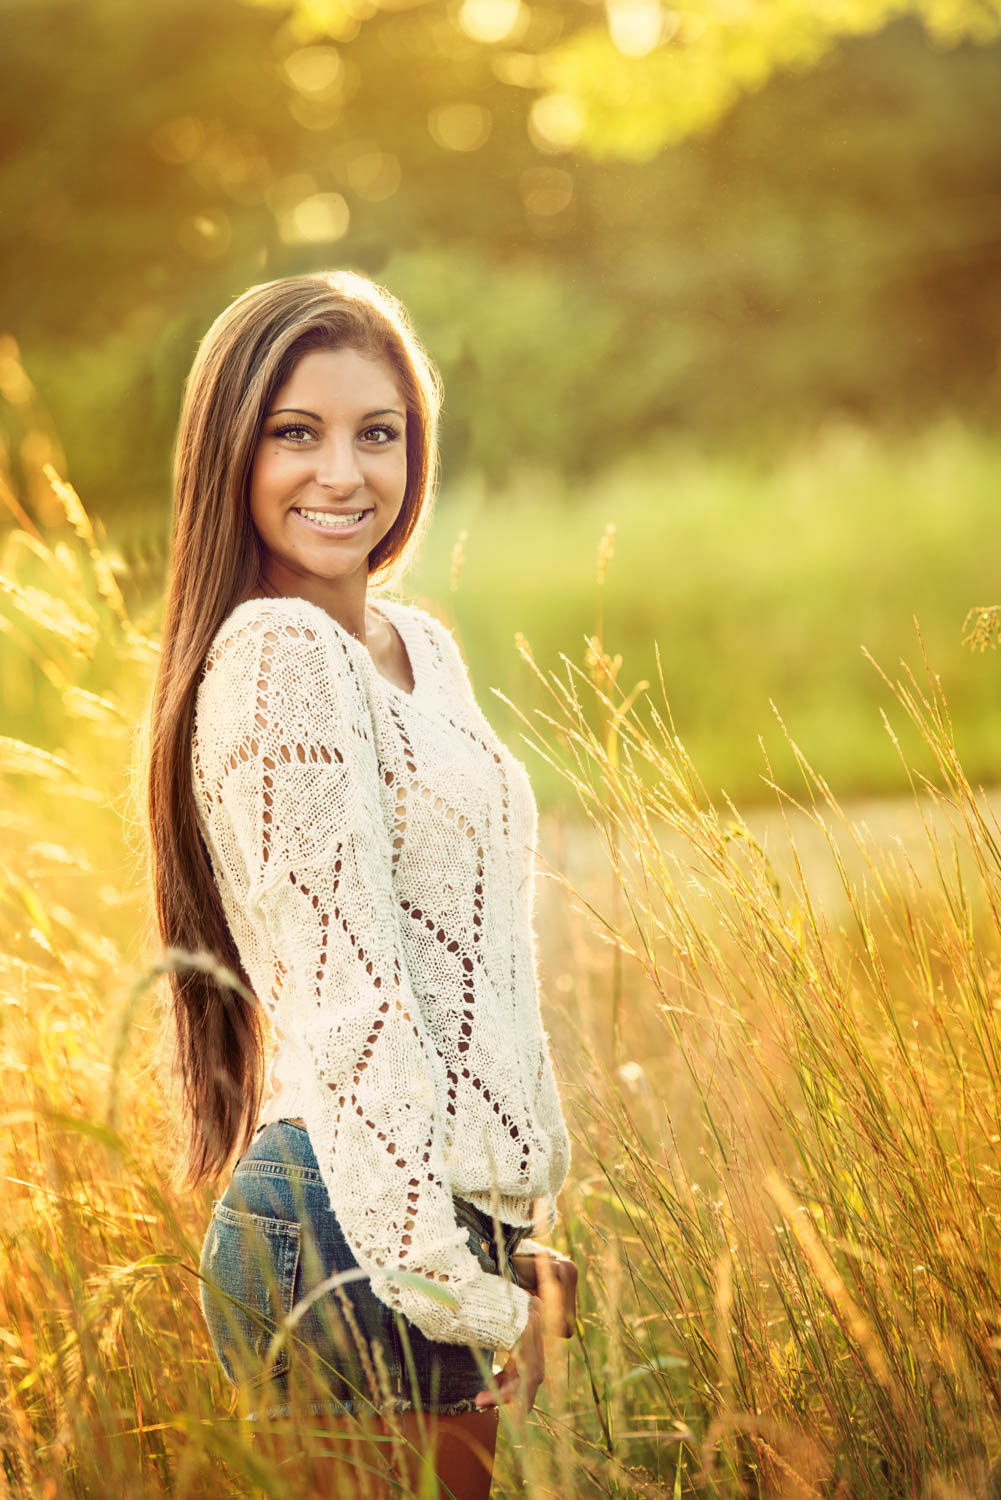 Golden hour senior picture, girl with long hair and sweater